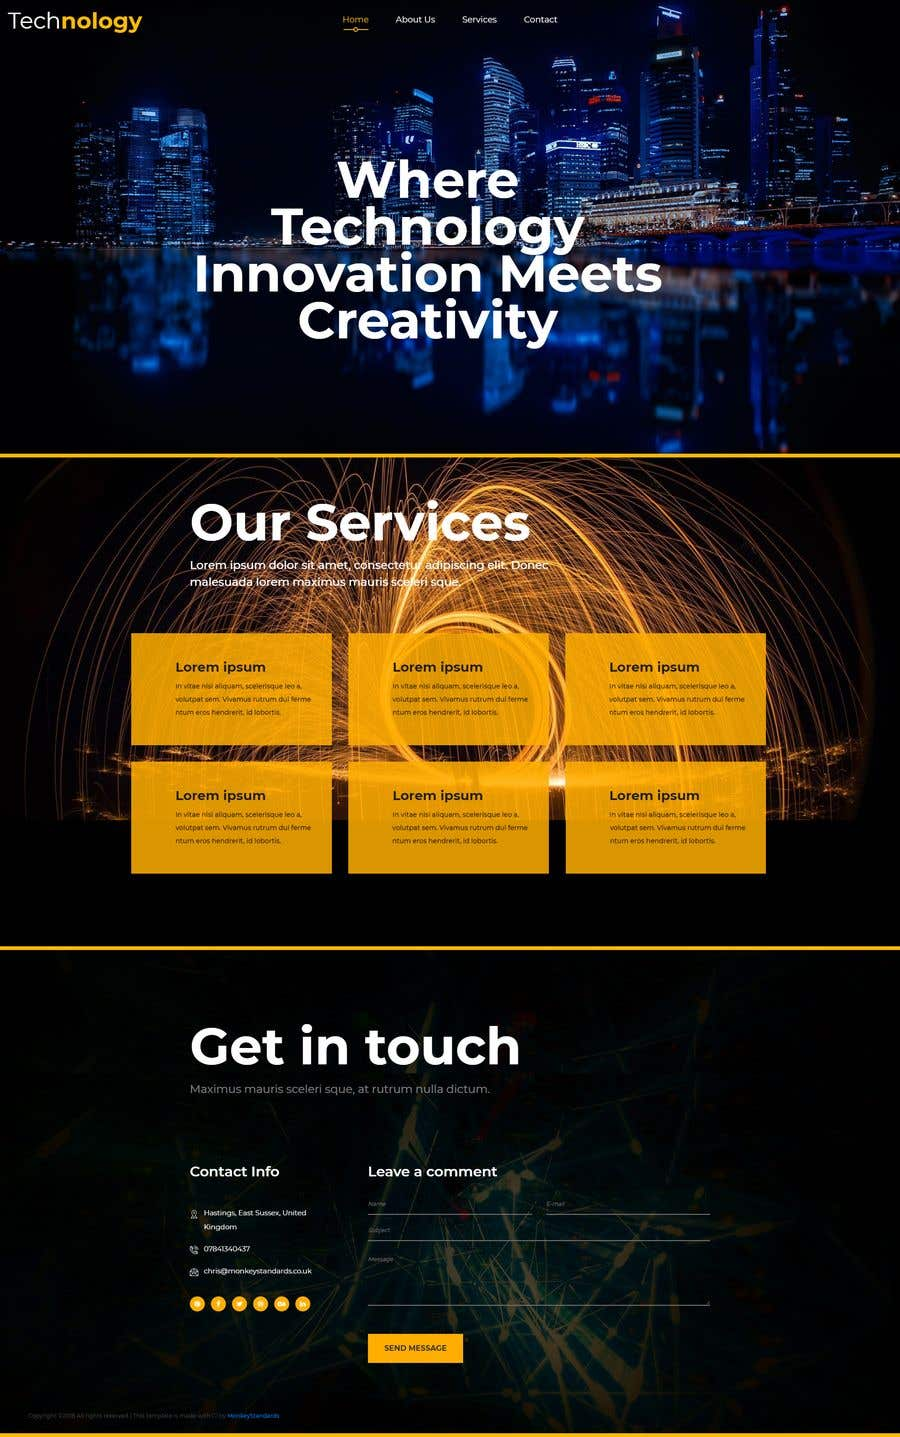 """Intrarea #5 pentru concursul """"Design smooth, elegant, luxurious, classy, sleek, BUT SIMPLE website for cutting edge technology consulting services. High tech, custom and special systems, futuristic technology company."""""""